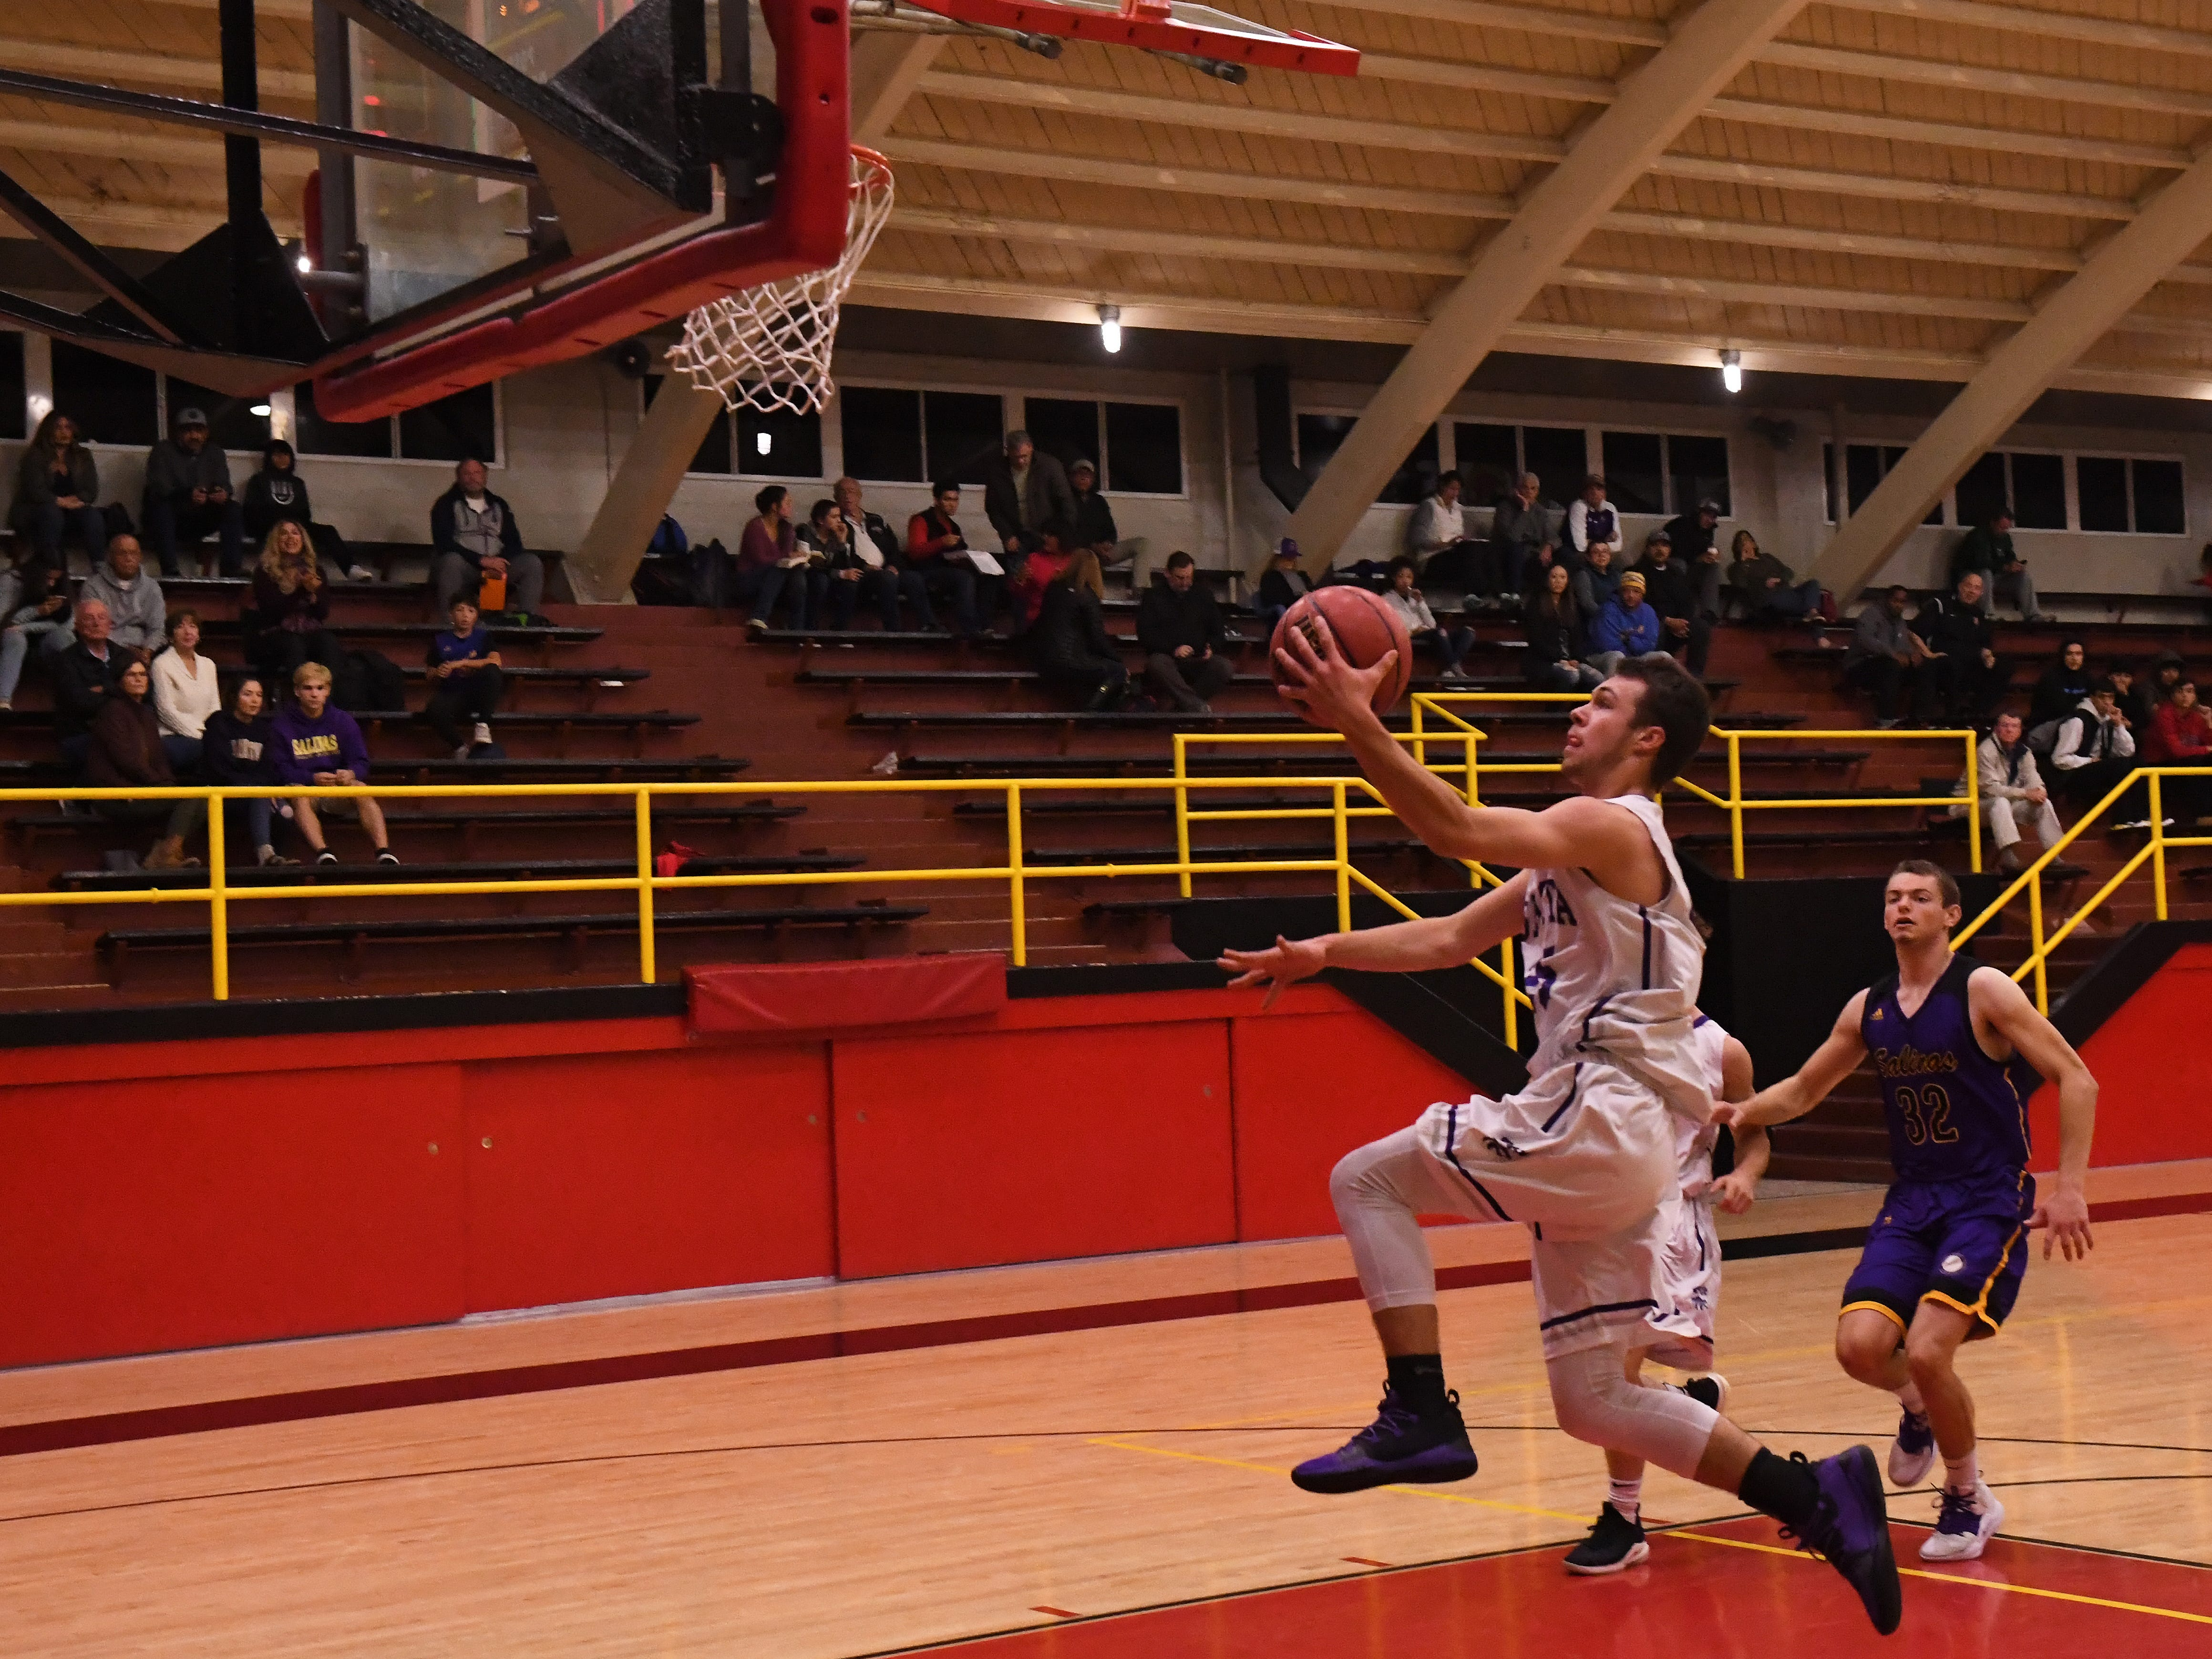 Shasta guard JT Beasley (25) rises up for a layup in the first quarter.